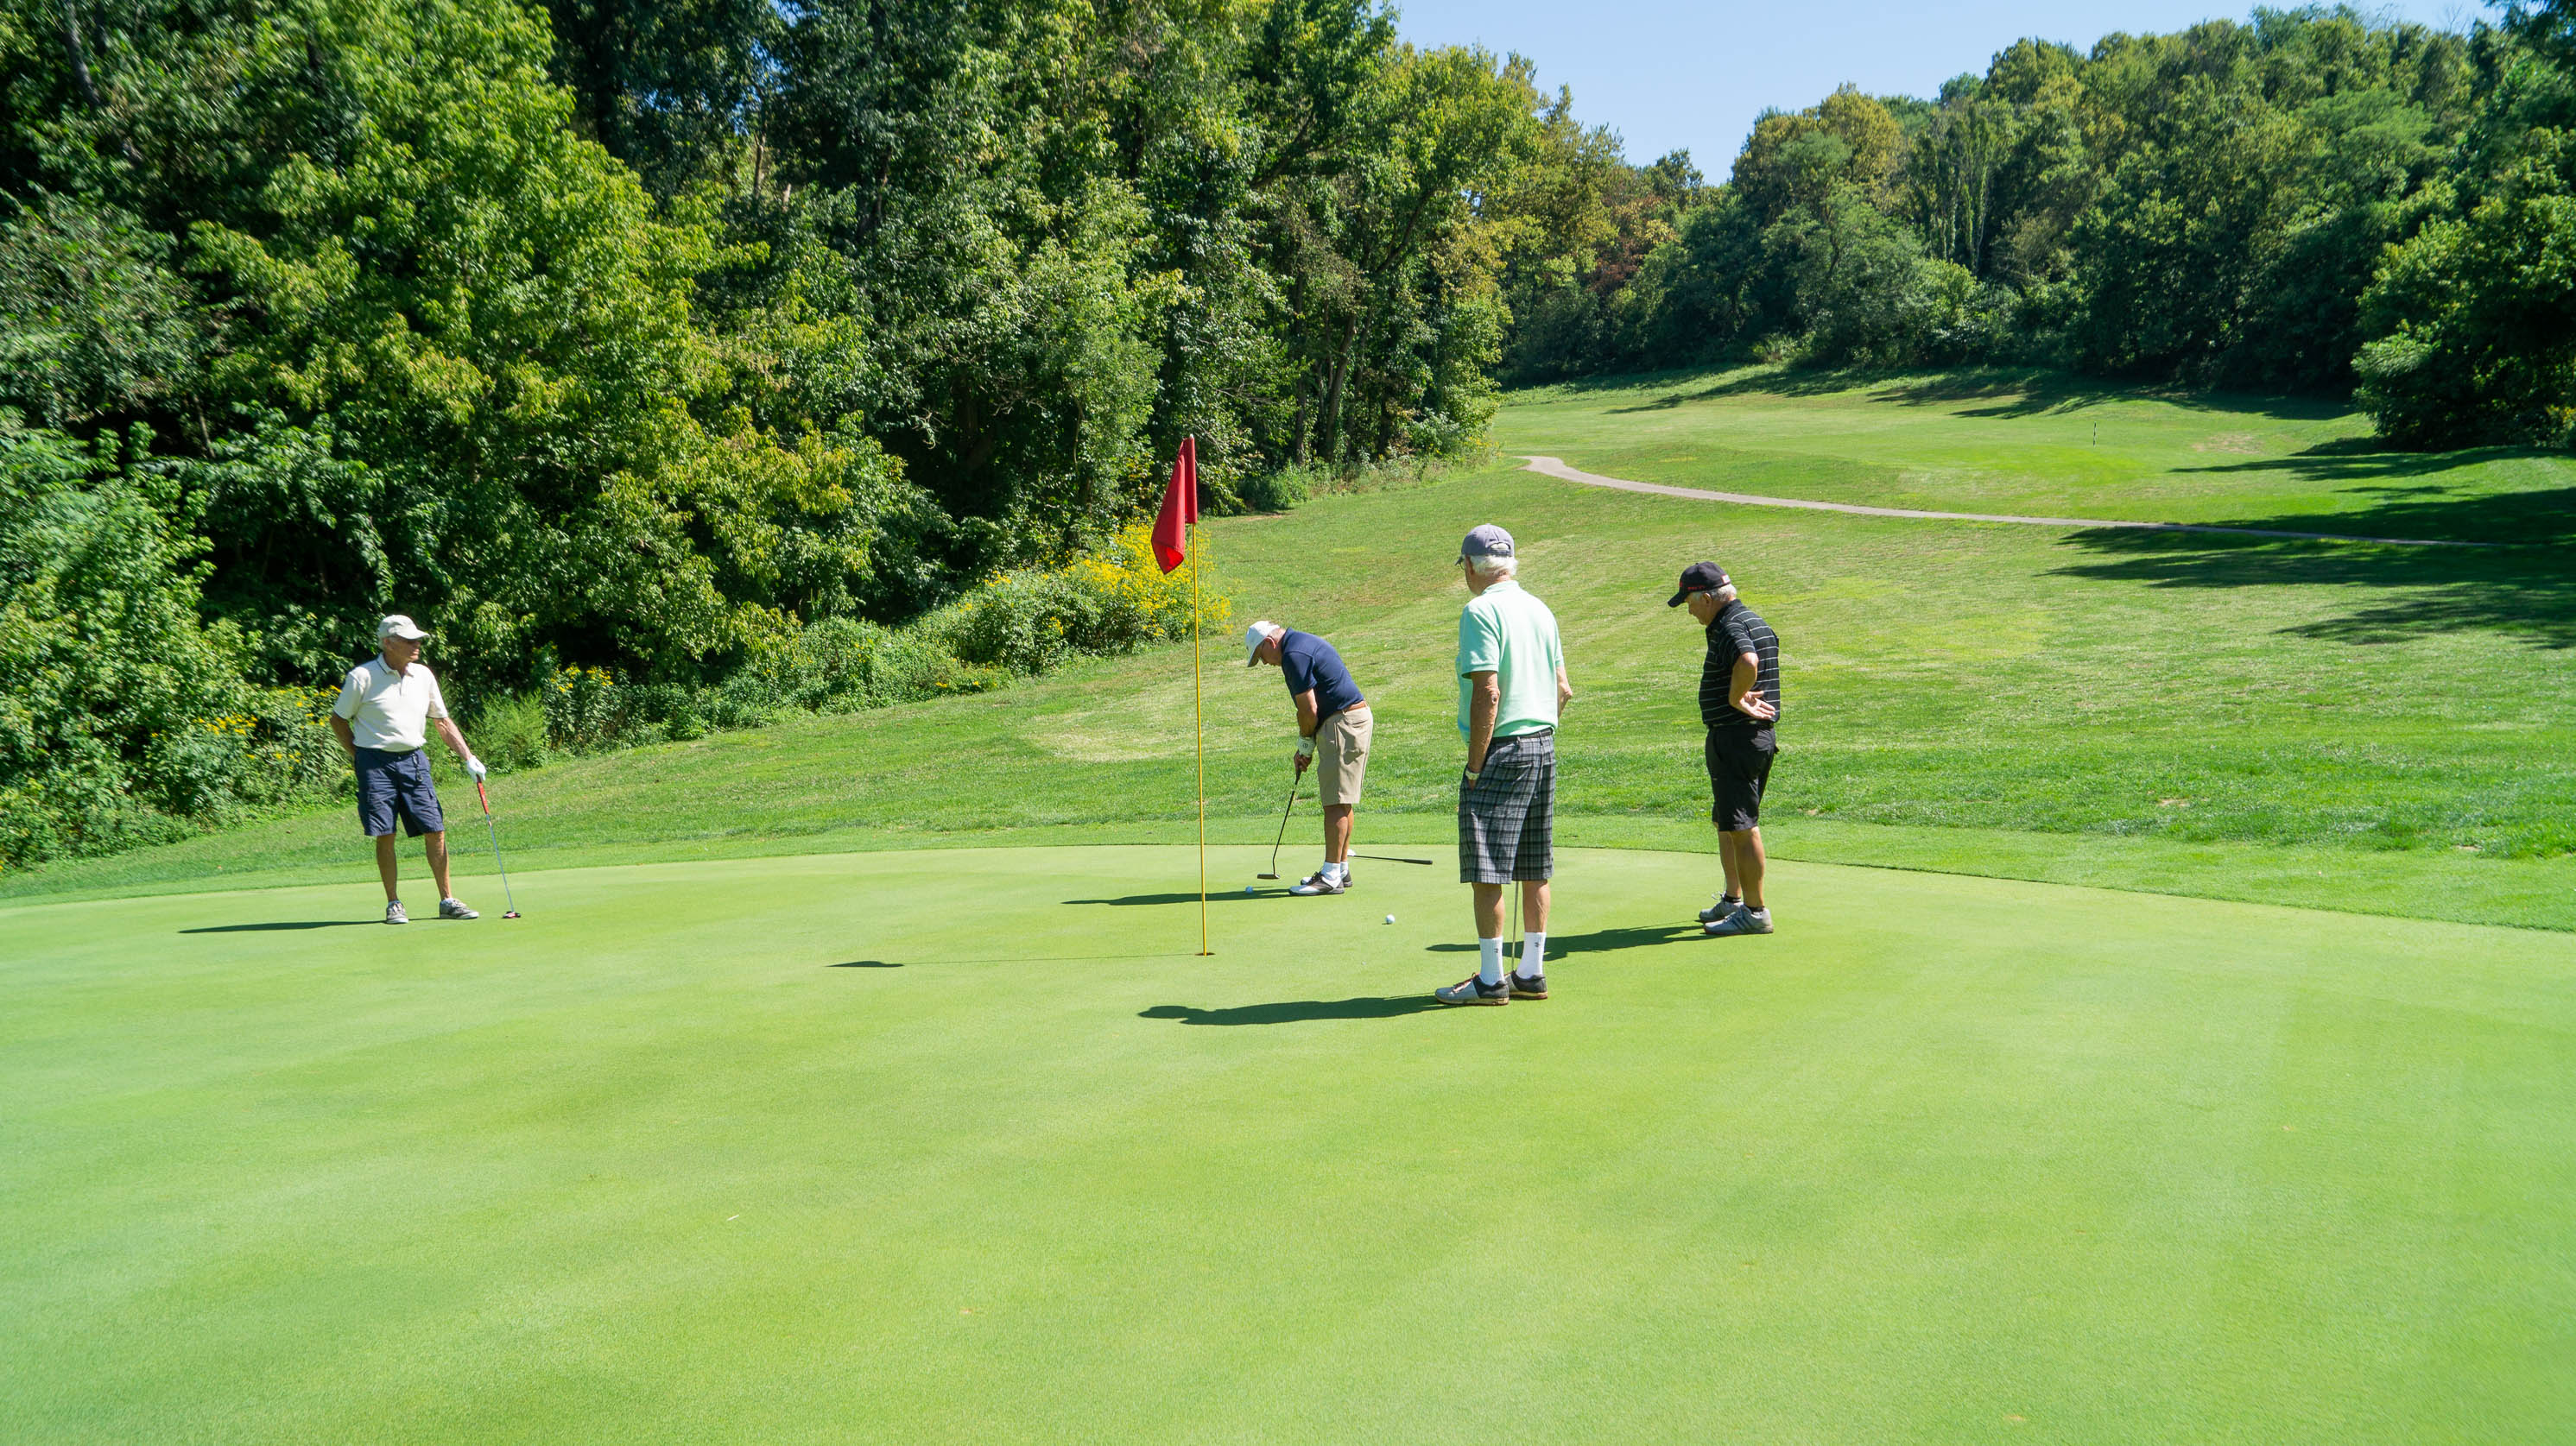 A group of four men tee off at Shawnee Lookout Golf Course during its final season. From the left, clockwise: a man in a white shirt and navy shorts waits for his teammates to finish their round; in the middle, a man with a navy shirt and khaki shorts is putting close to the hole; and two men, one in a turquoise shirt and plaid shorts, and the other in a black striped shirt and black, shorts look on. The hole is surrounded by trees on a sunny day.